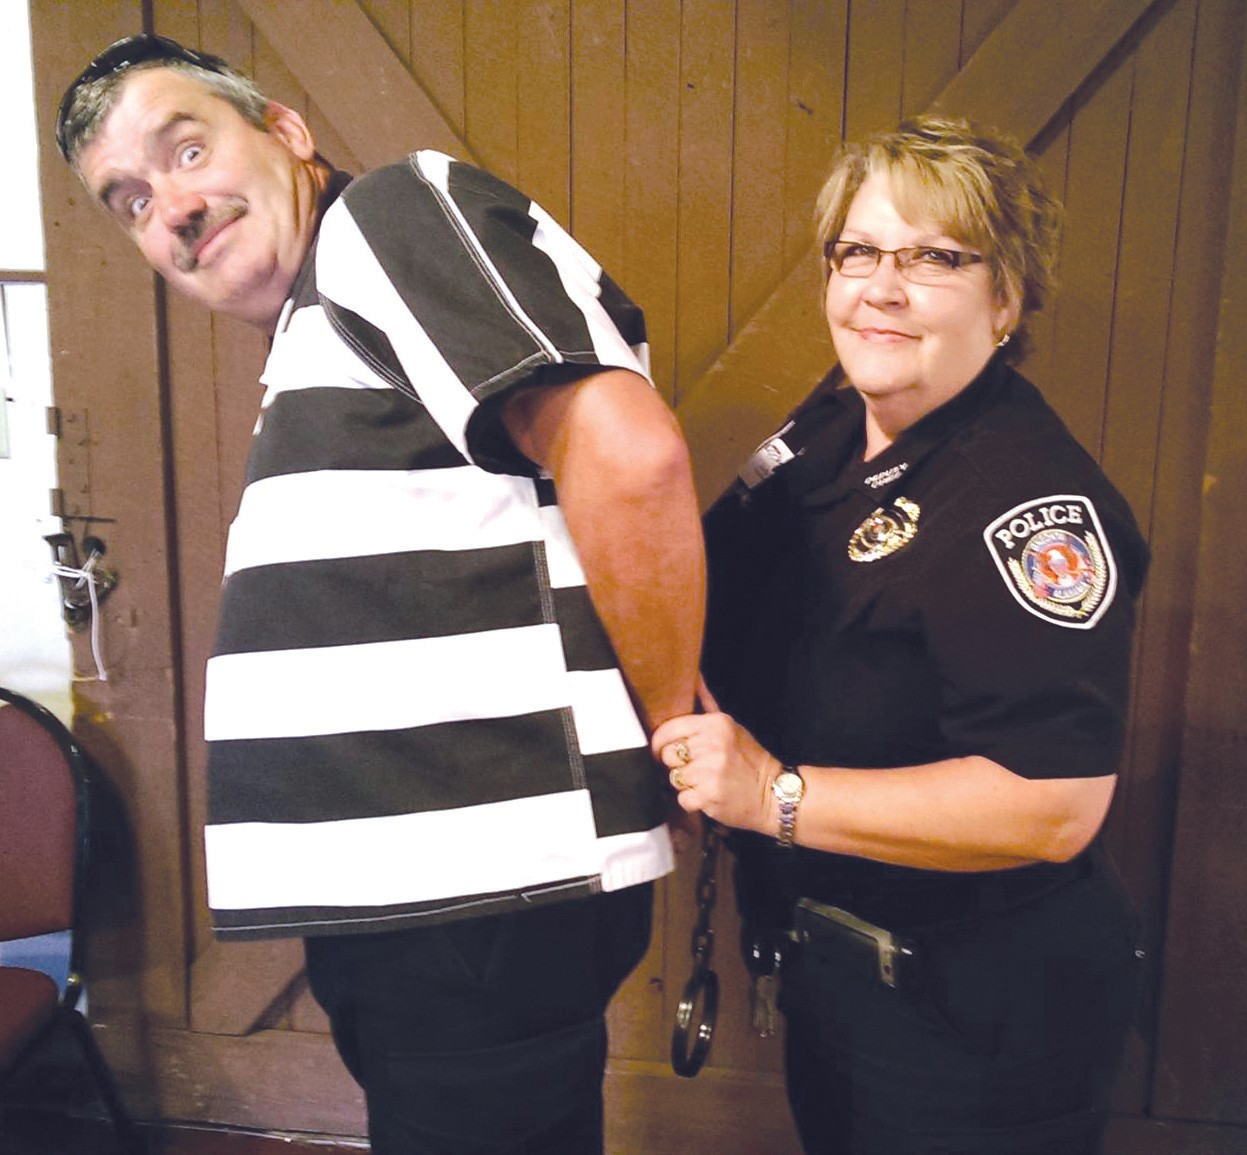 Oneonta deputy police Chief Judy Underwood 'cuffs' Oneonta Lt. Steve Gunn, 'resisting arrest' as one of more than 50 executives 'apprehended' in the Muscular Dystrophy Association's (MDA) Blount County fundraising lockup last week. The slammer was the Depot in Oneonta where jailbirds desperately worked the phones for an hour apiece to raise their ransom ('bail') of $1,600. MDA worker Katherine Shivers said the organization has already collected more than $28,000 from Blount County, exceeding the goal of $20,000 with more than a month left to go before the deadline for bail. 'We have found these areas like Blount County outside the major metros to be very successful venues for MDA,' Shivers said. 'There's more of a sense of fun and community here. We saw it at the lockup last week.' Funds collected will be used by MDA for muscle biopsies and flu shots, therapy visits at MDA-funded clinics, maintenance of wheelchairs, and summer camp for children ages 6 to 17. If you have been contacted by someone 'locked up' for the MDA, you can still respond and donate toward their bail. Underwood, incidentally was a double-duty doozy, serving as both law officer and jailbird in the faux roundup of 'offenders.' – Ron Gholson